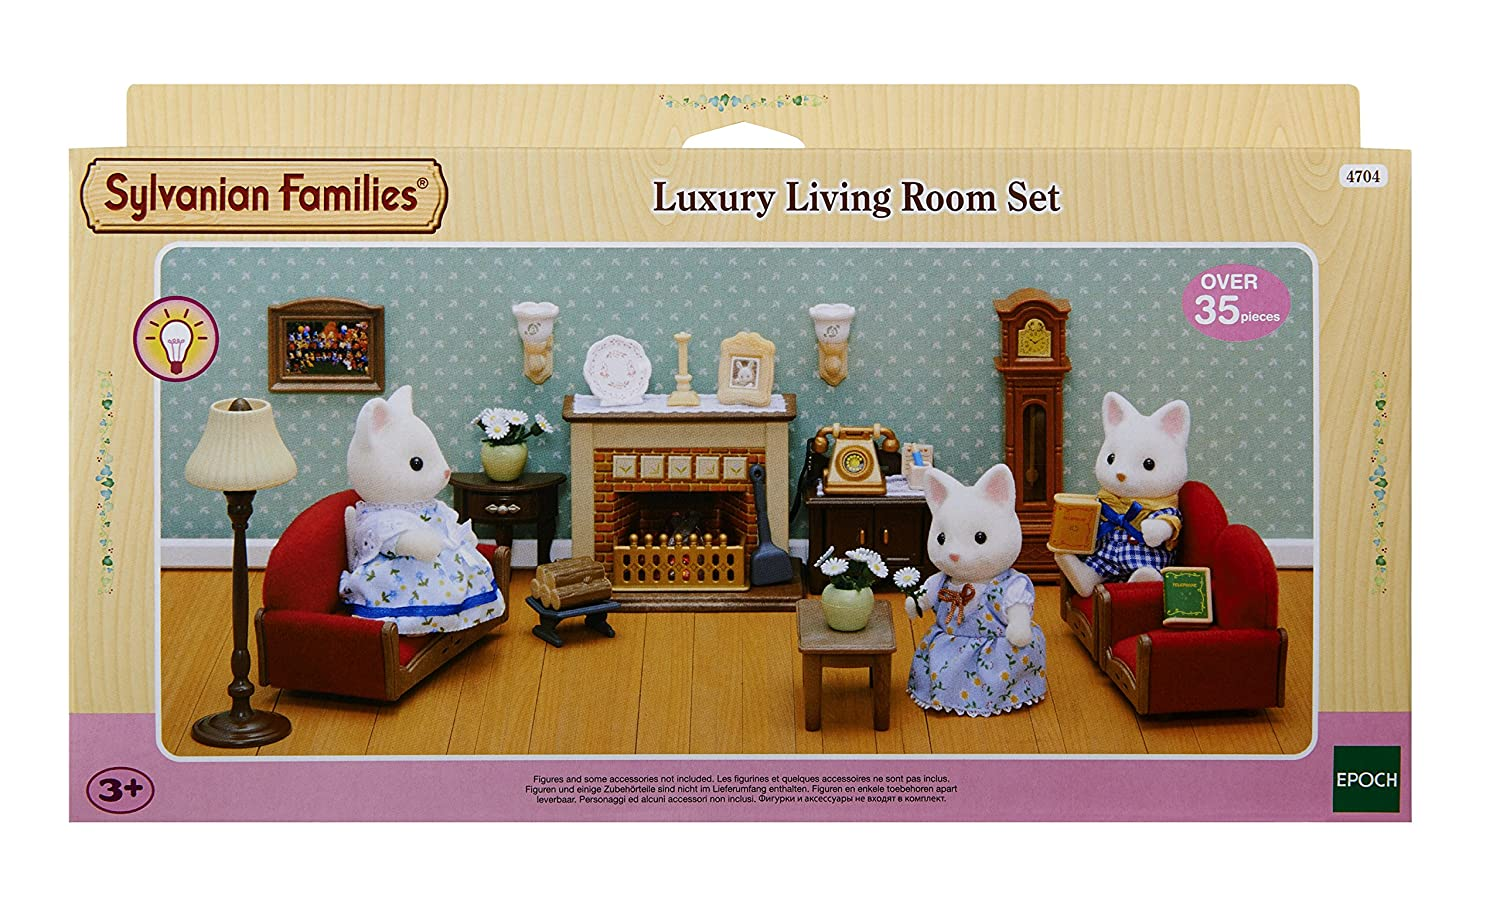 sylvanian families luxury living room set amazoncouk toys games - Sylvanian Families Living Room Set